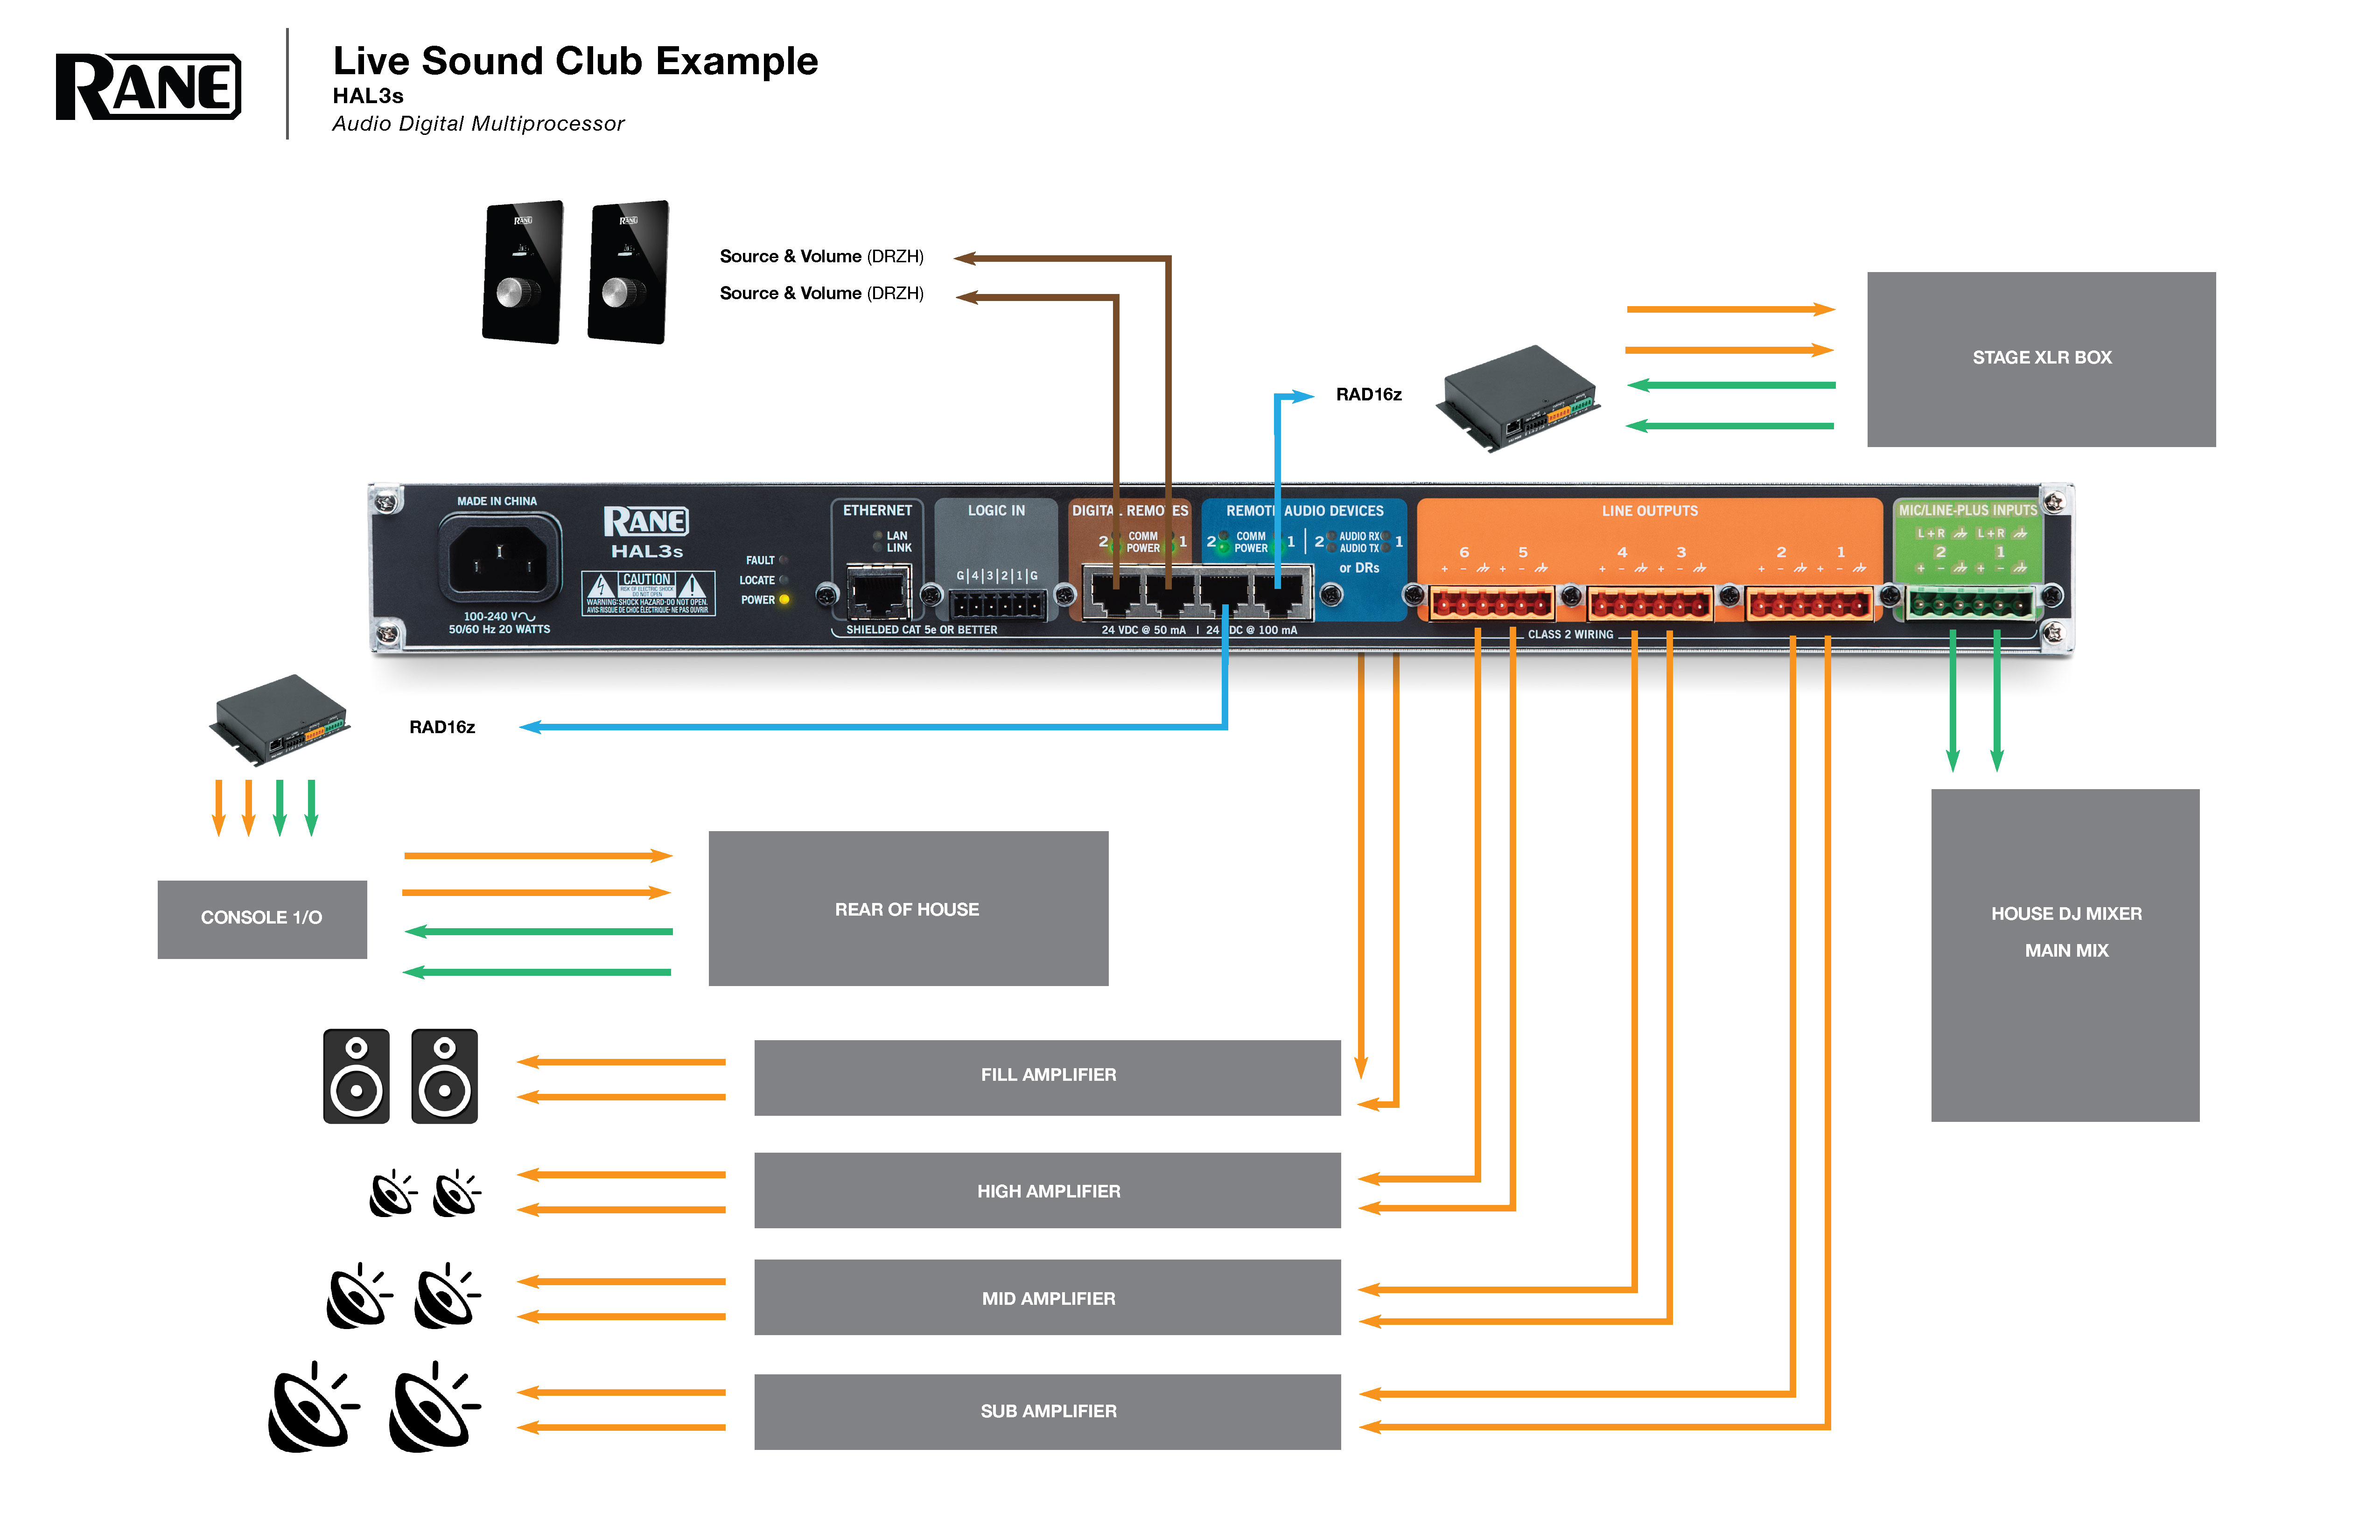 Live Sound Club Use Case Guide